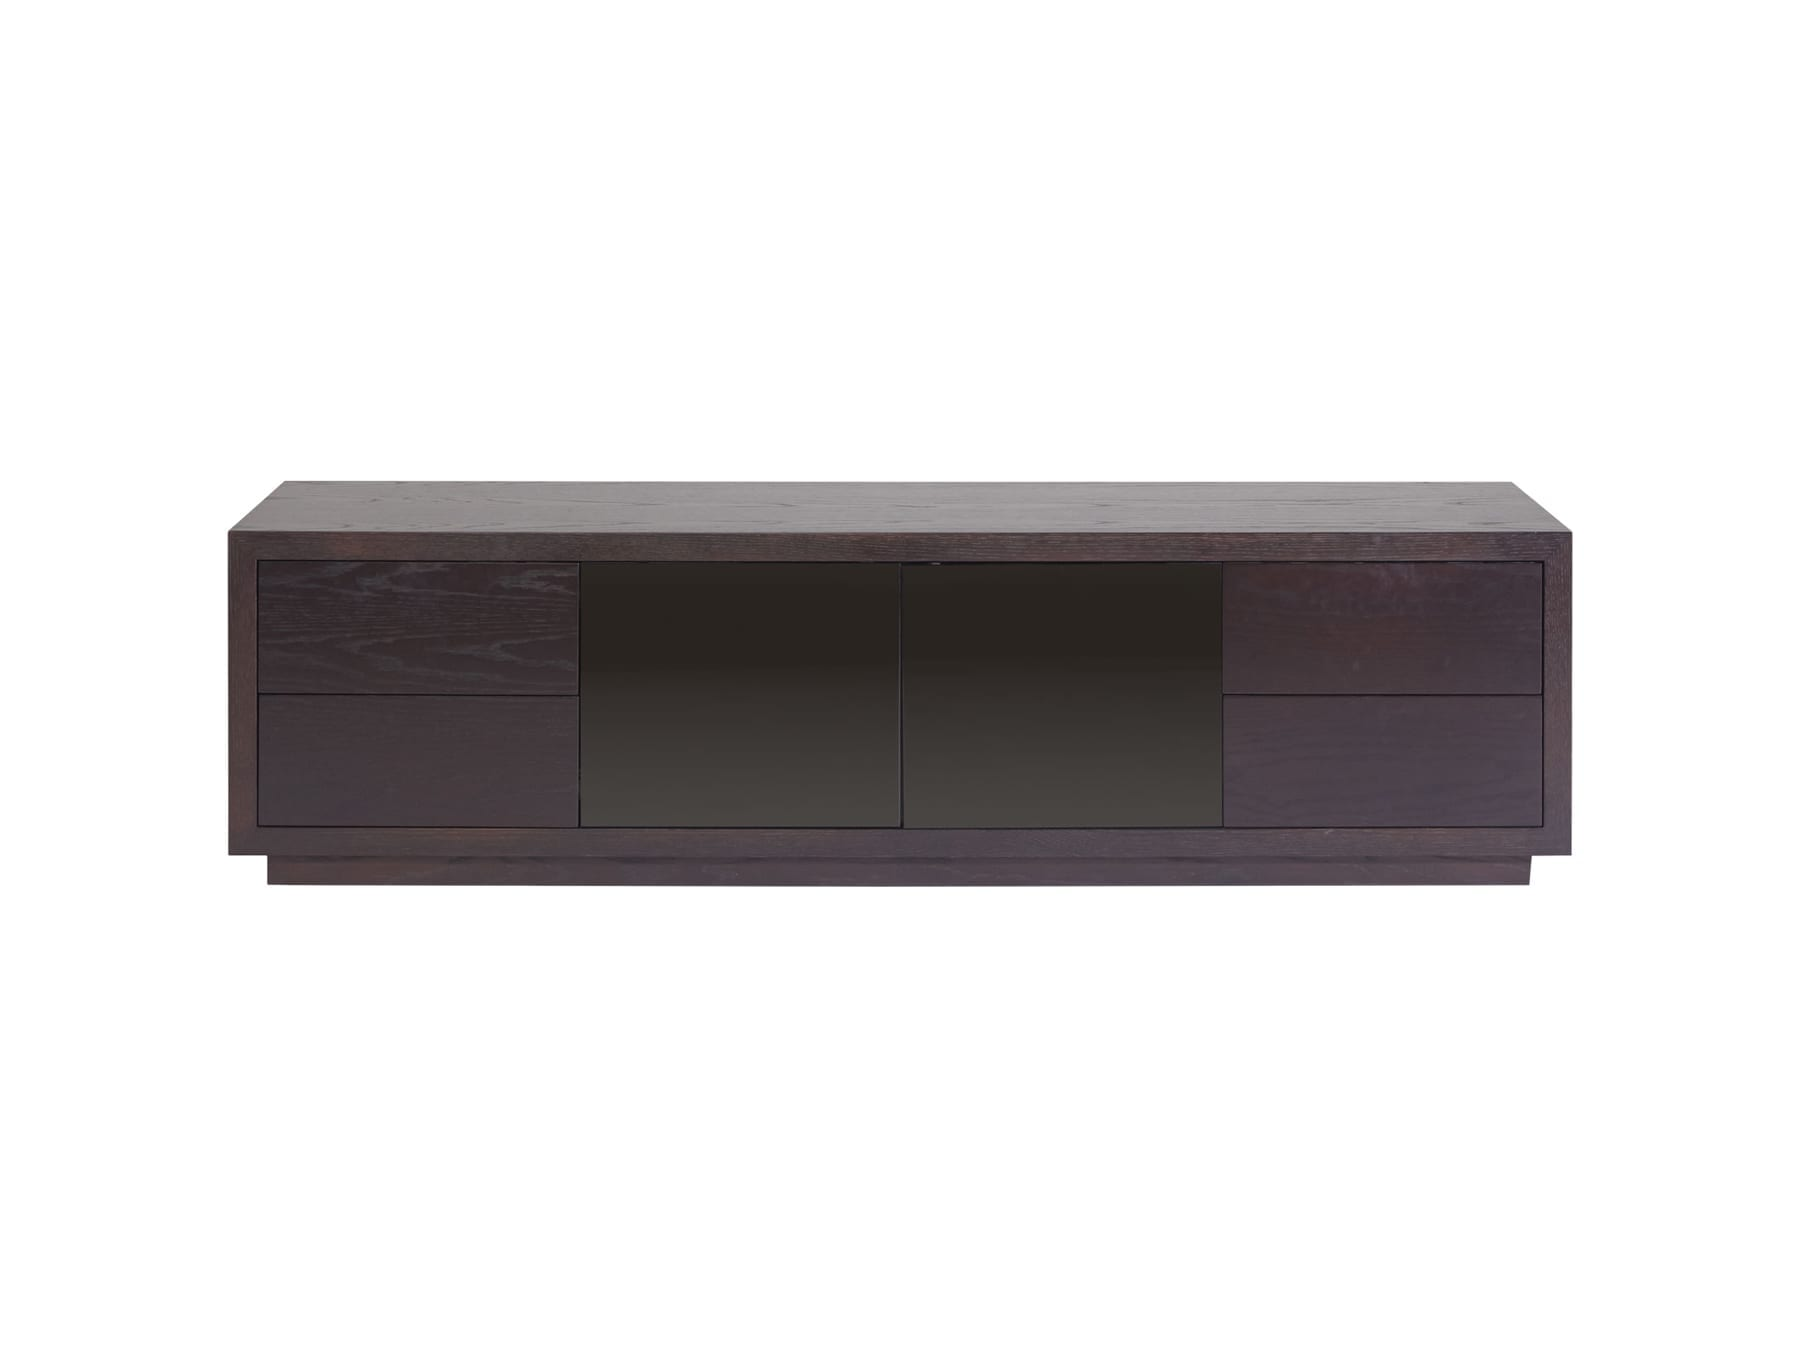 Evo Furniture Dimarco Entertainment Unit #3 available at McKenzie & Willis